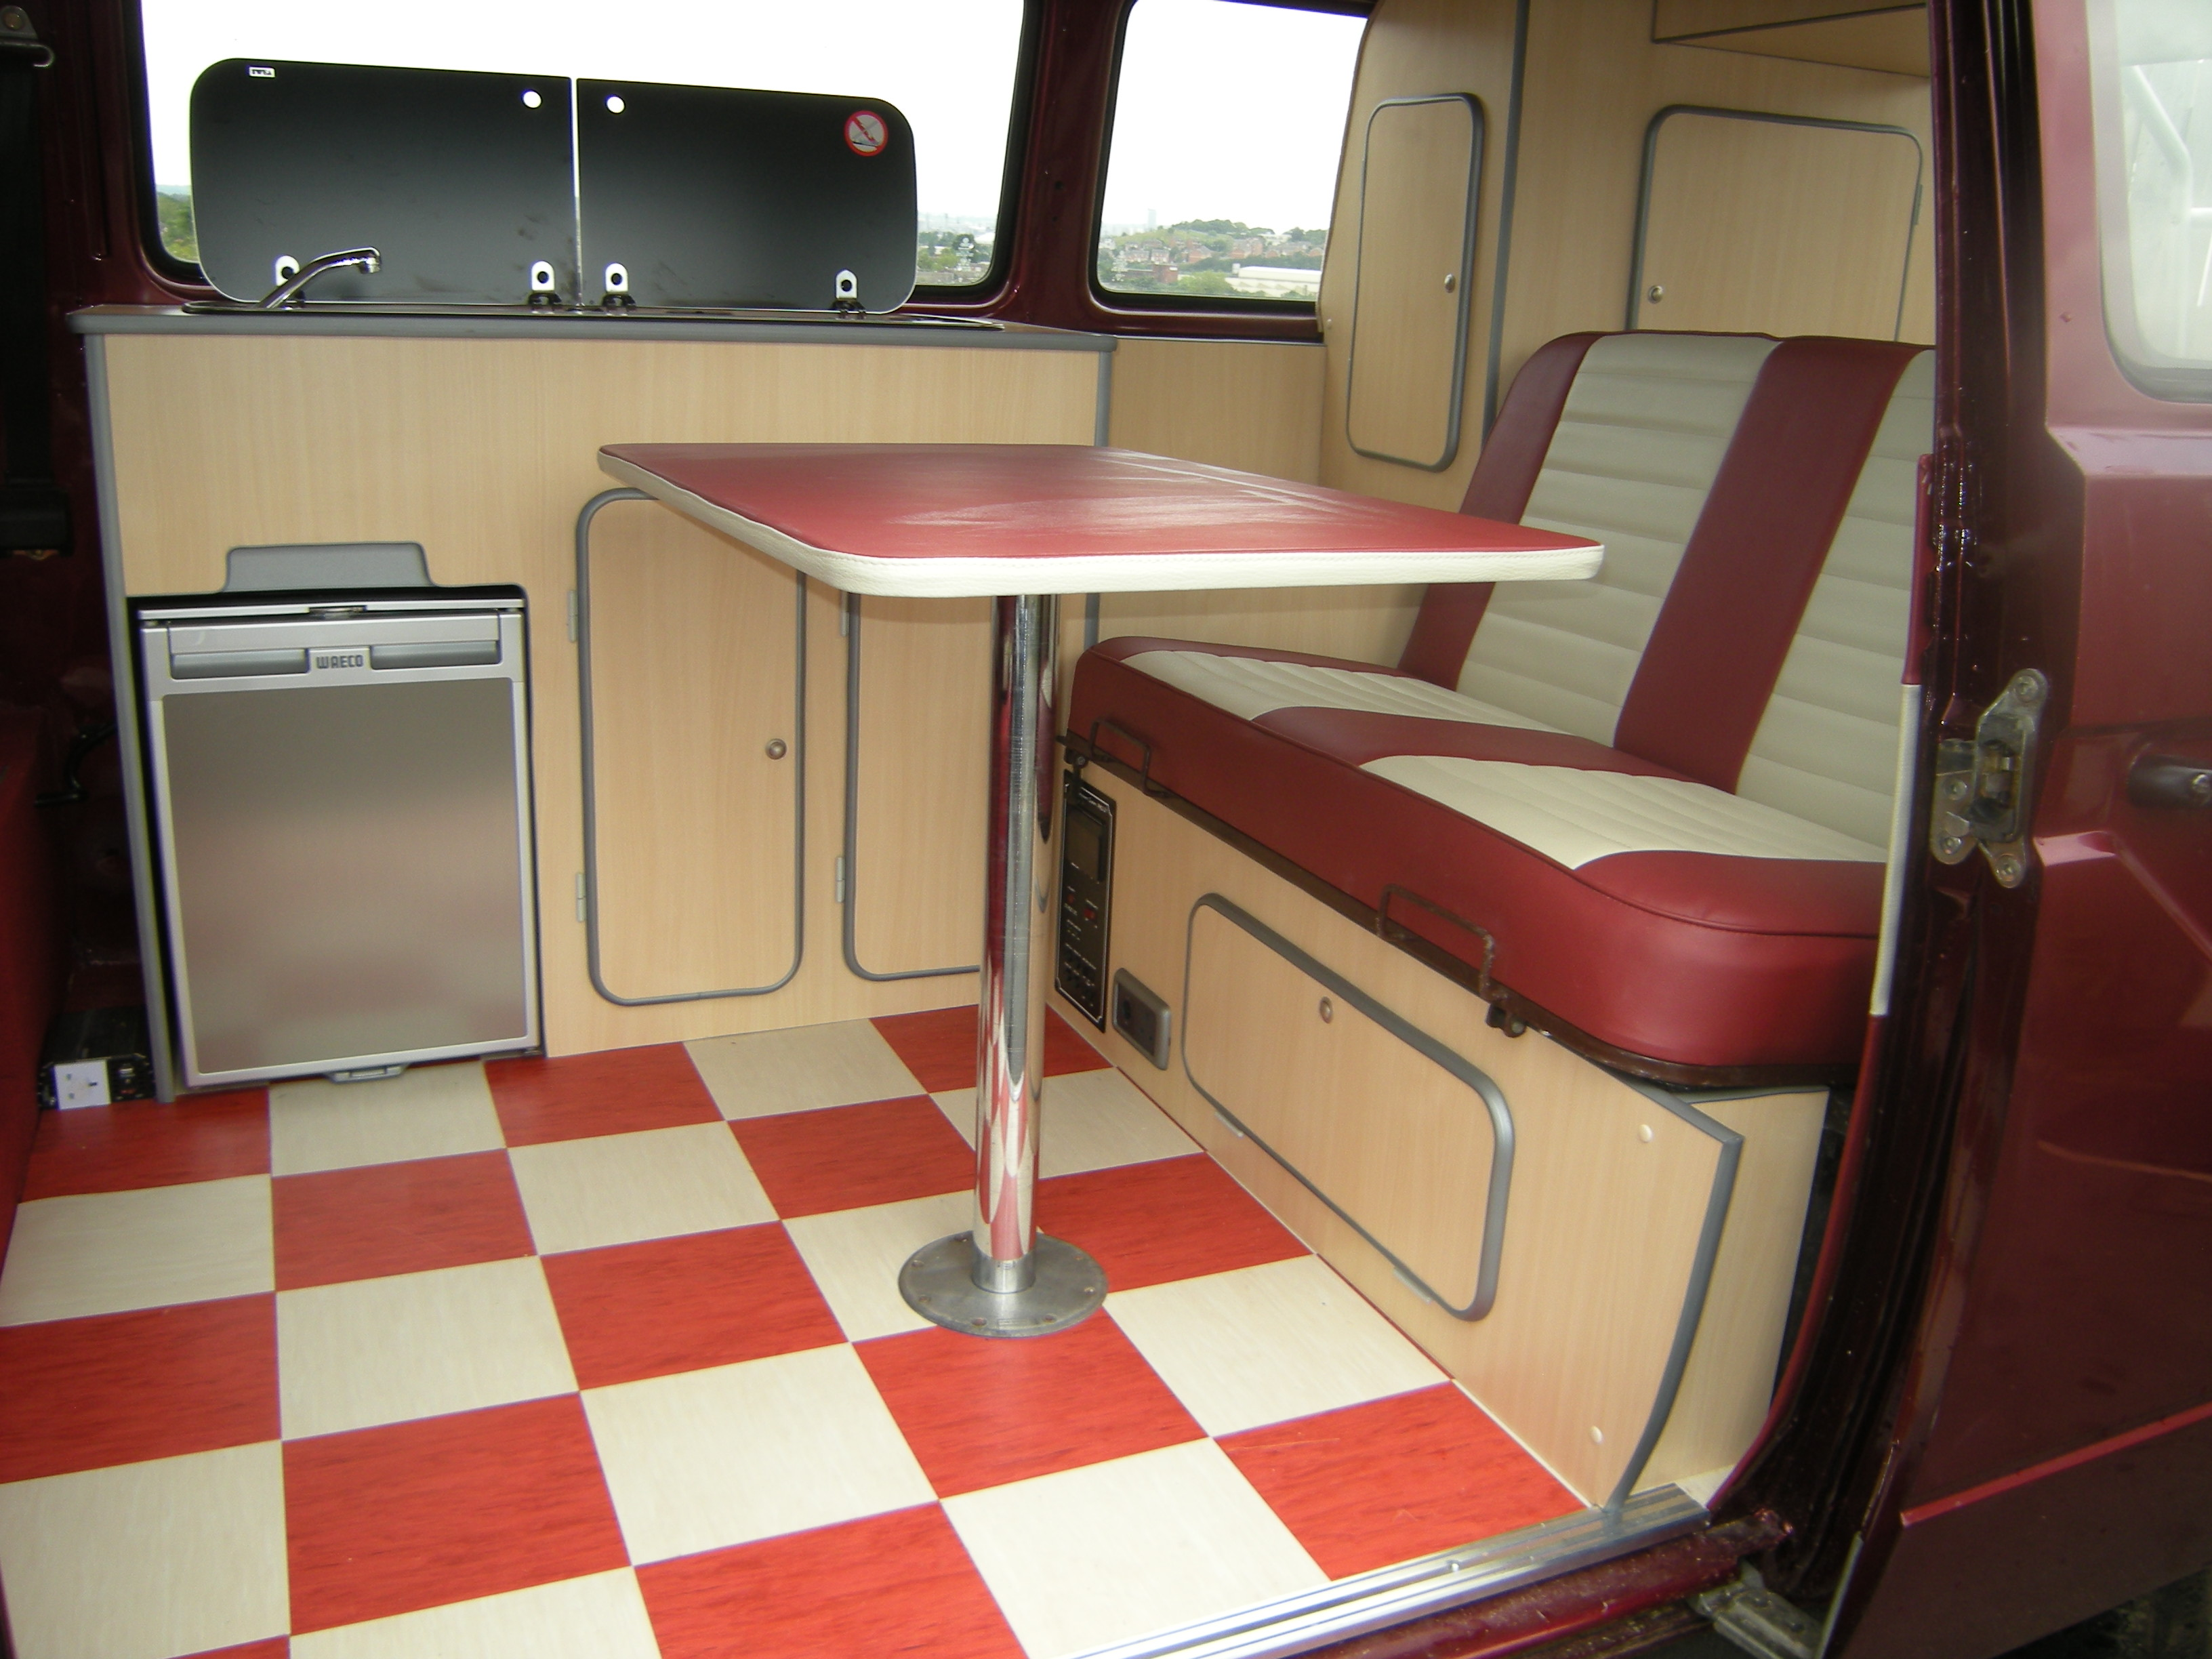 Camper Van Conversions Yorkshire Is Something That I Specialise In Have Been Fitting Out Vans From My Premises